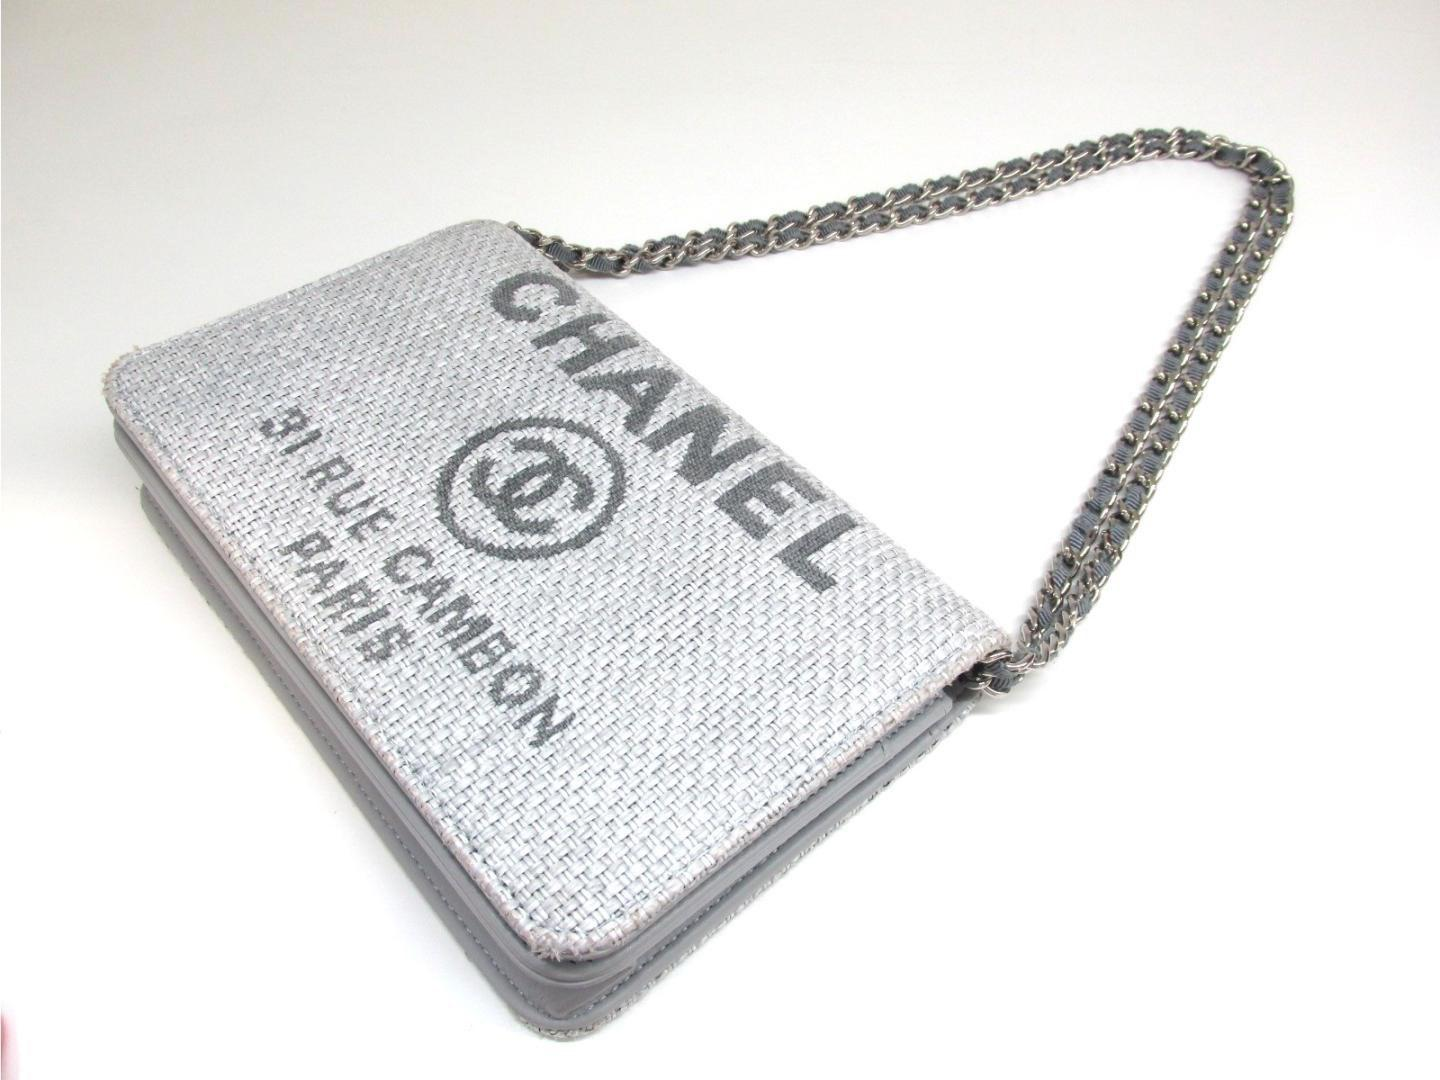 adbaff079c26 Chanel Straw Deauville Logo Canvas Cc Clutch Bag Gray Straw in Gray ...